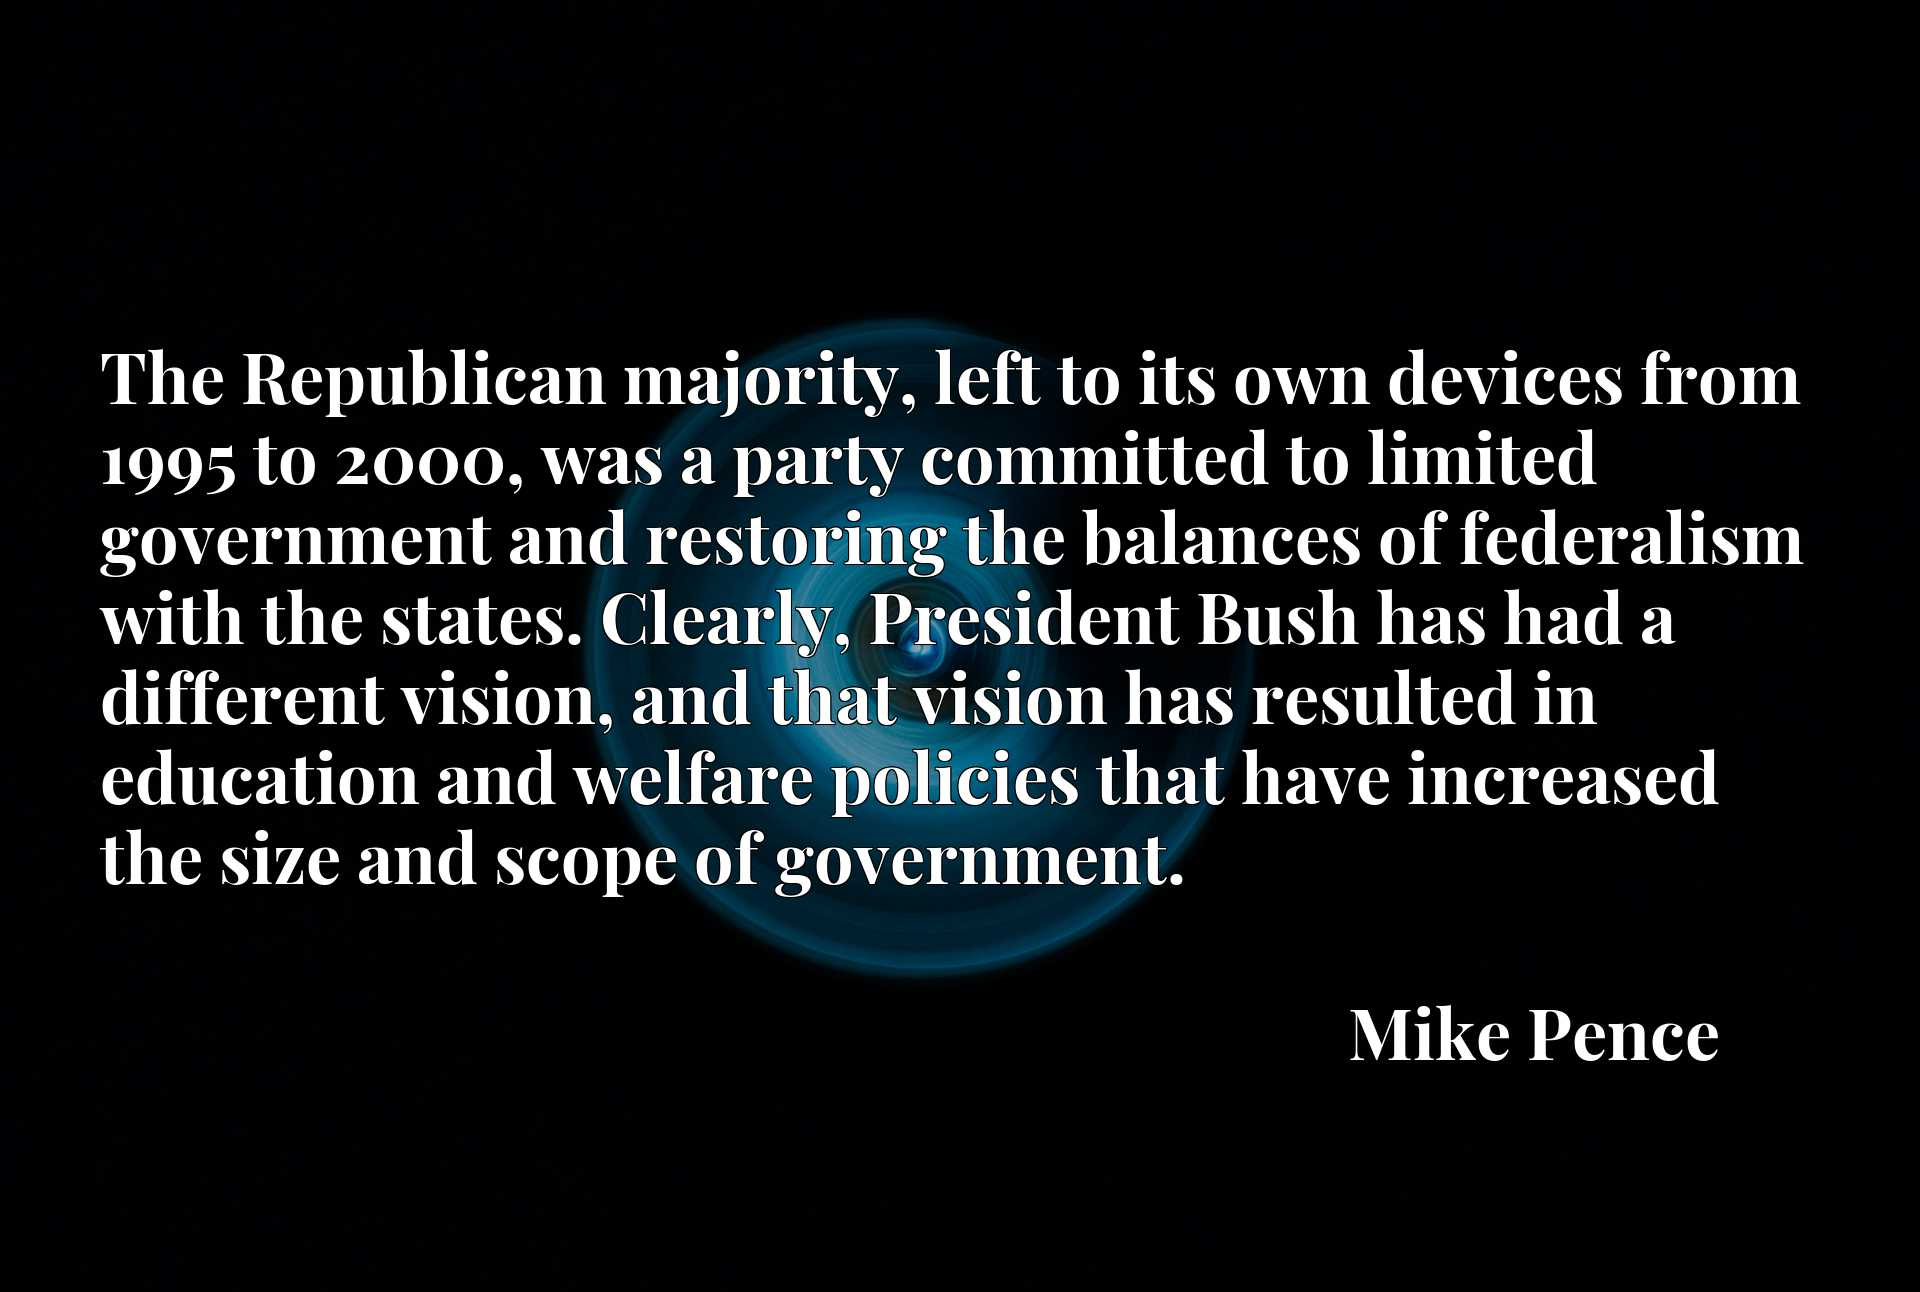 The Republican majority, left to its own devices from 1995 to 2000, was a party committed to limited government and restoring the balances of federalism with the states. Clearly, President Bush has had a different vision, and that vision has resulted in education and welfare policies that have increased the size and scope of government.